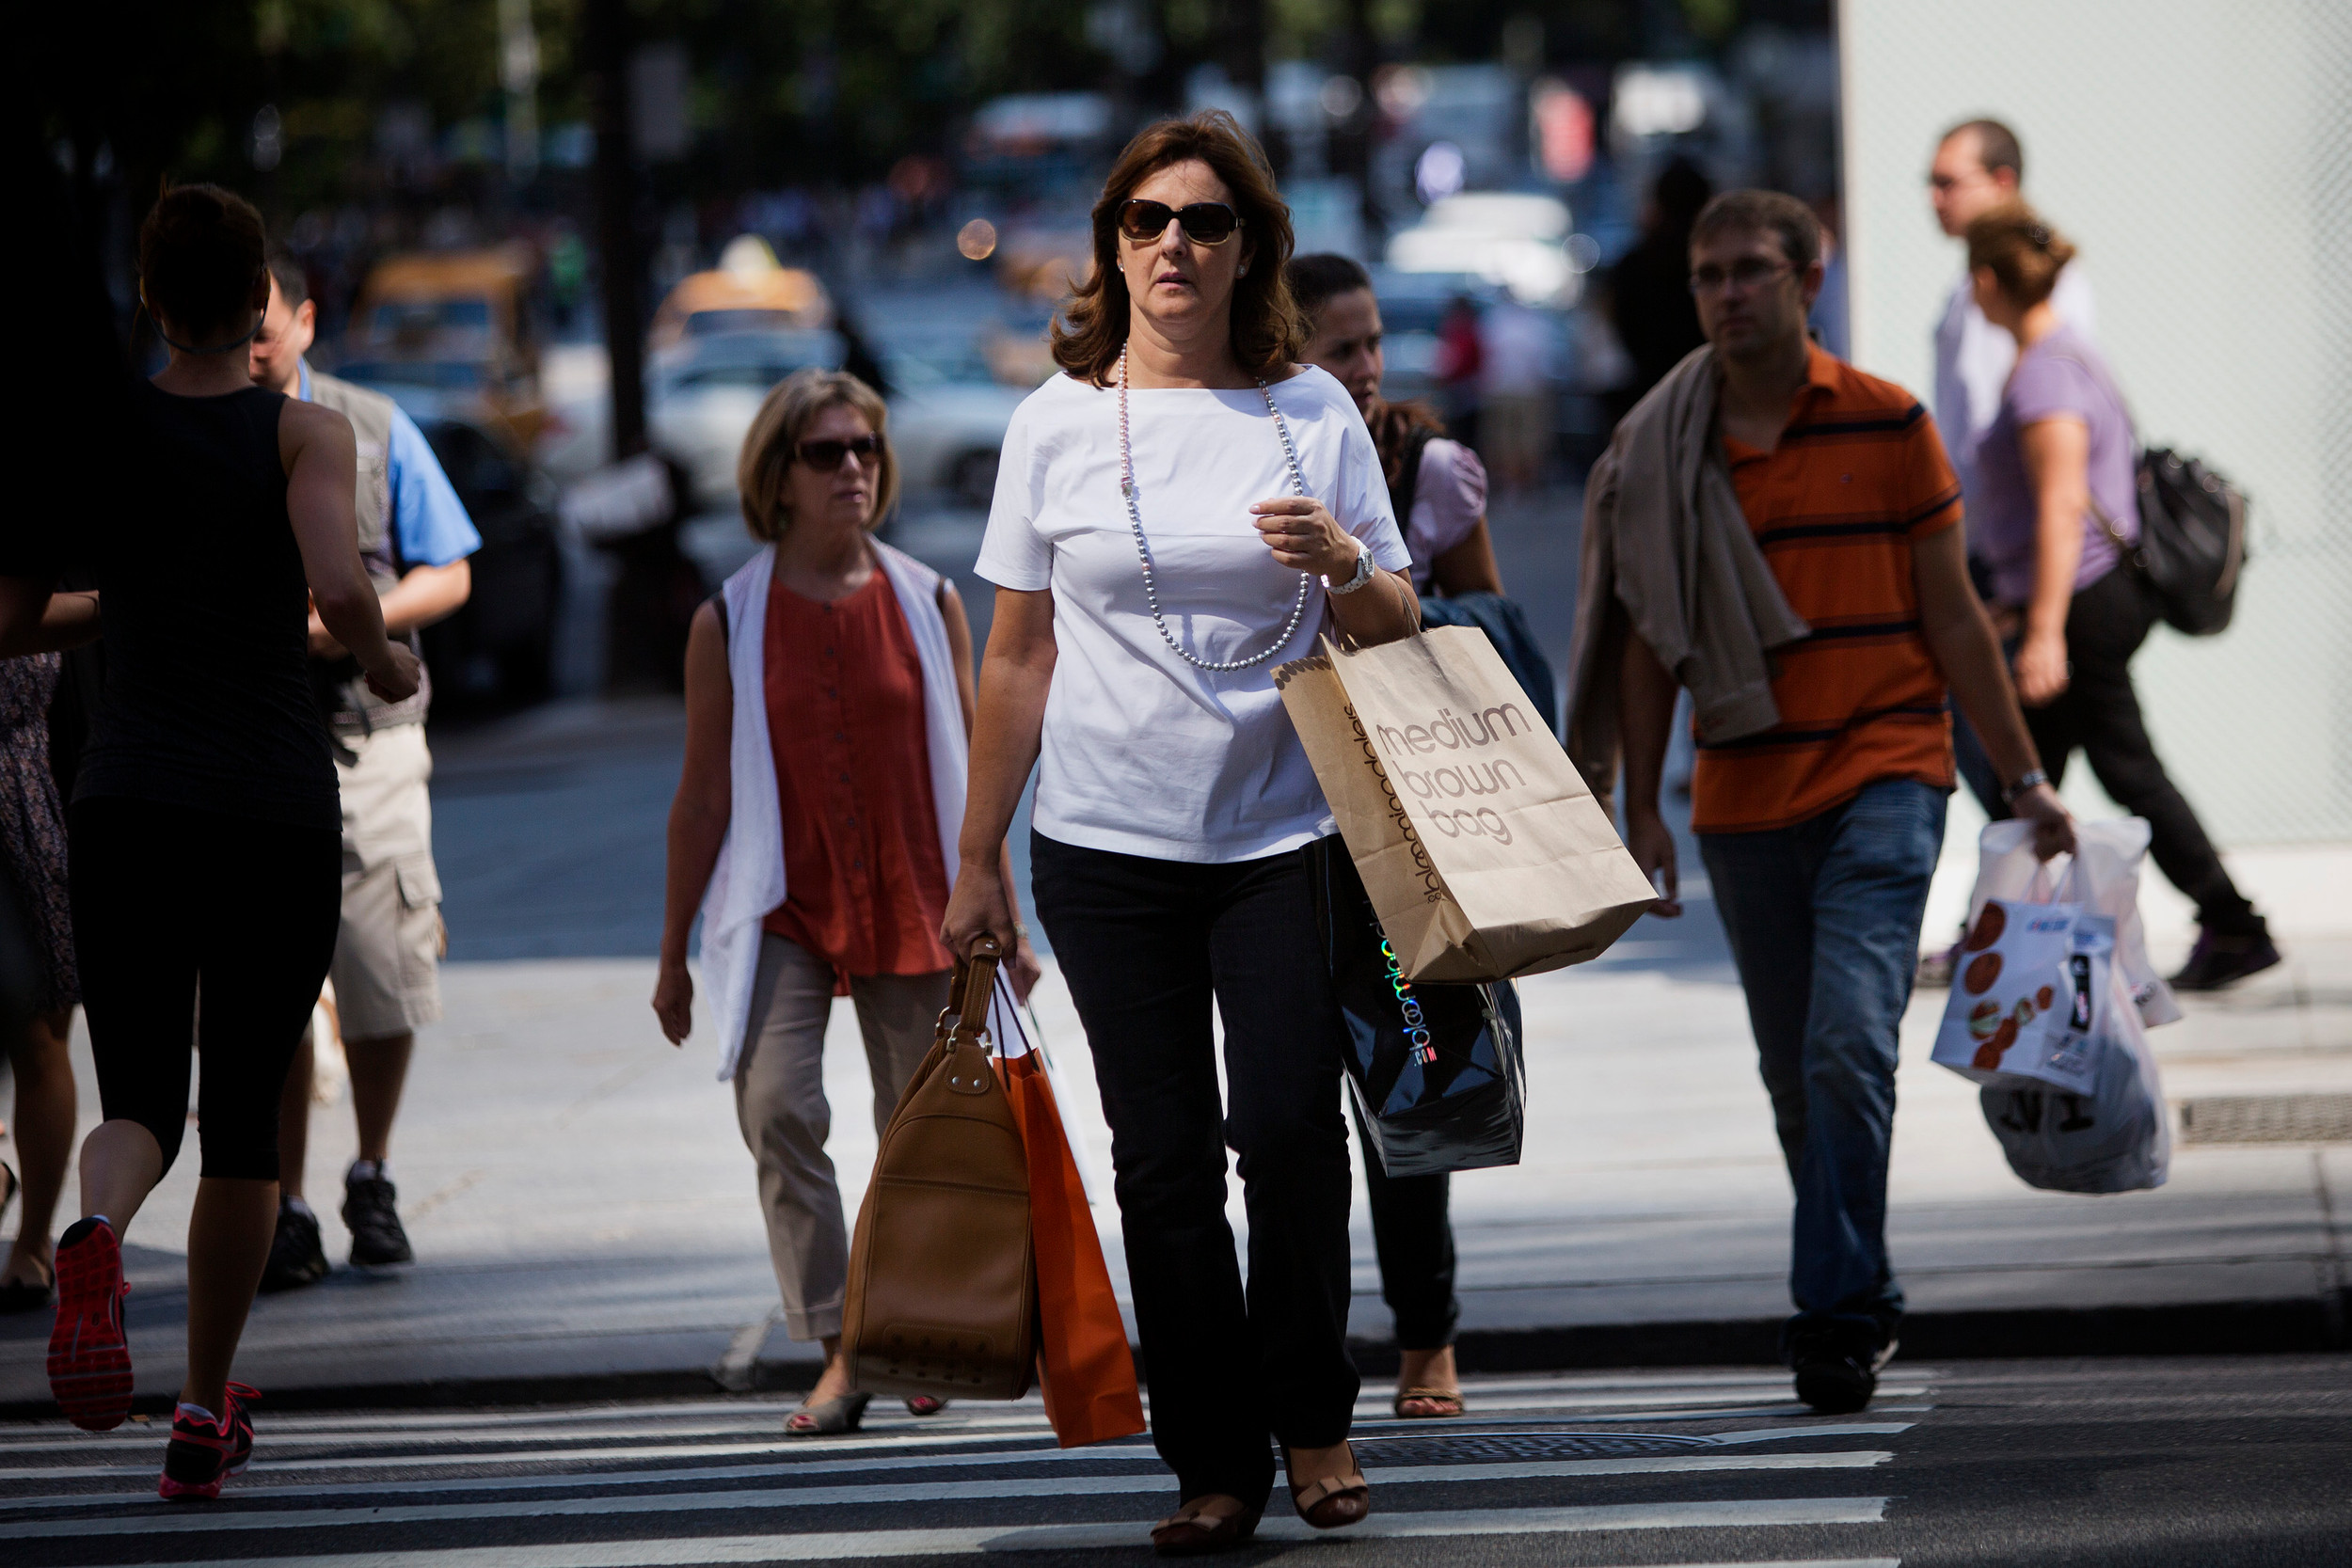 ecd48e34 A woman carries a shopping bag on Fifth Avenue in New York. The Department  of